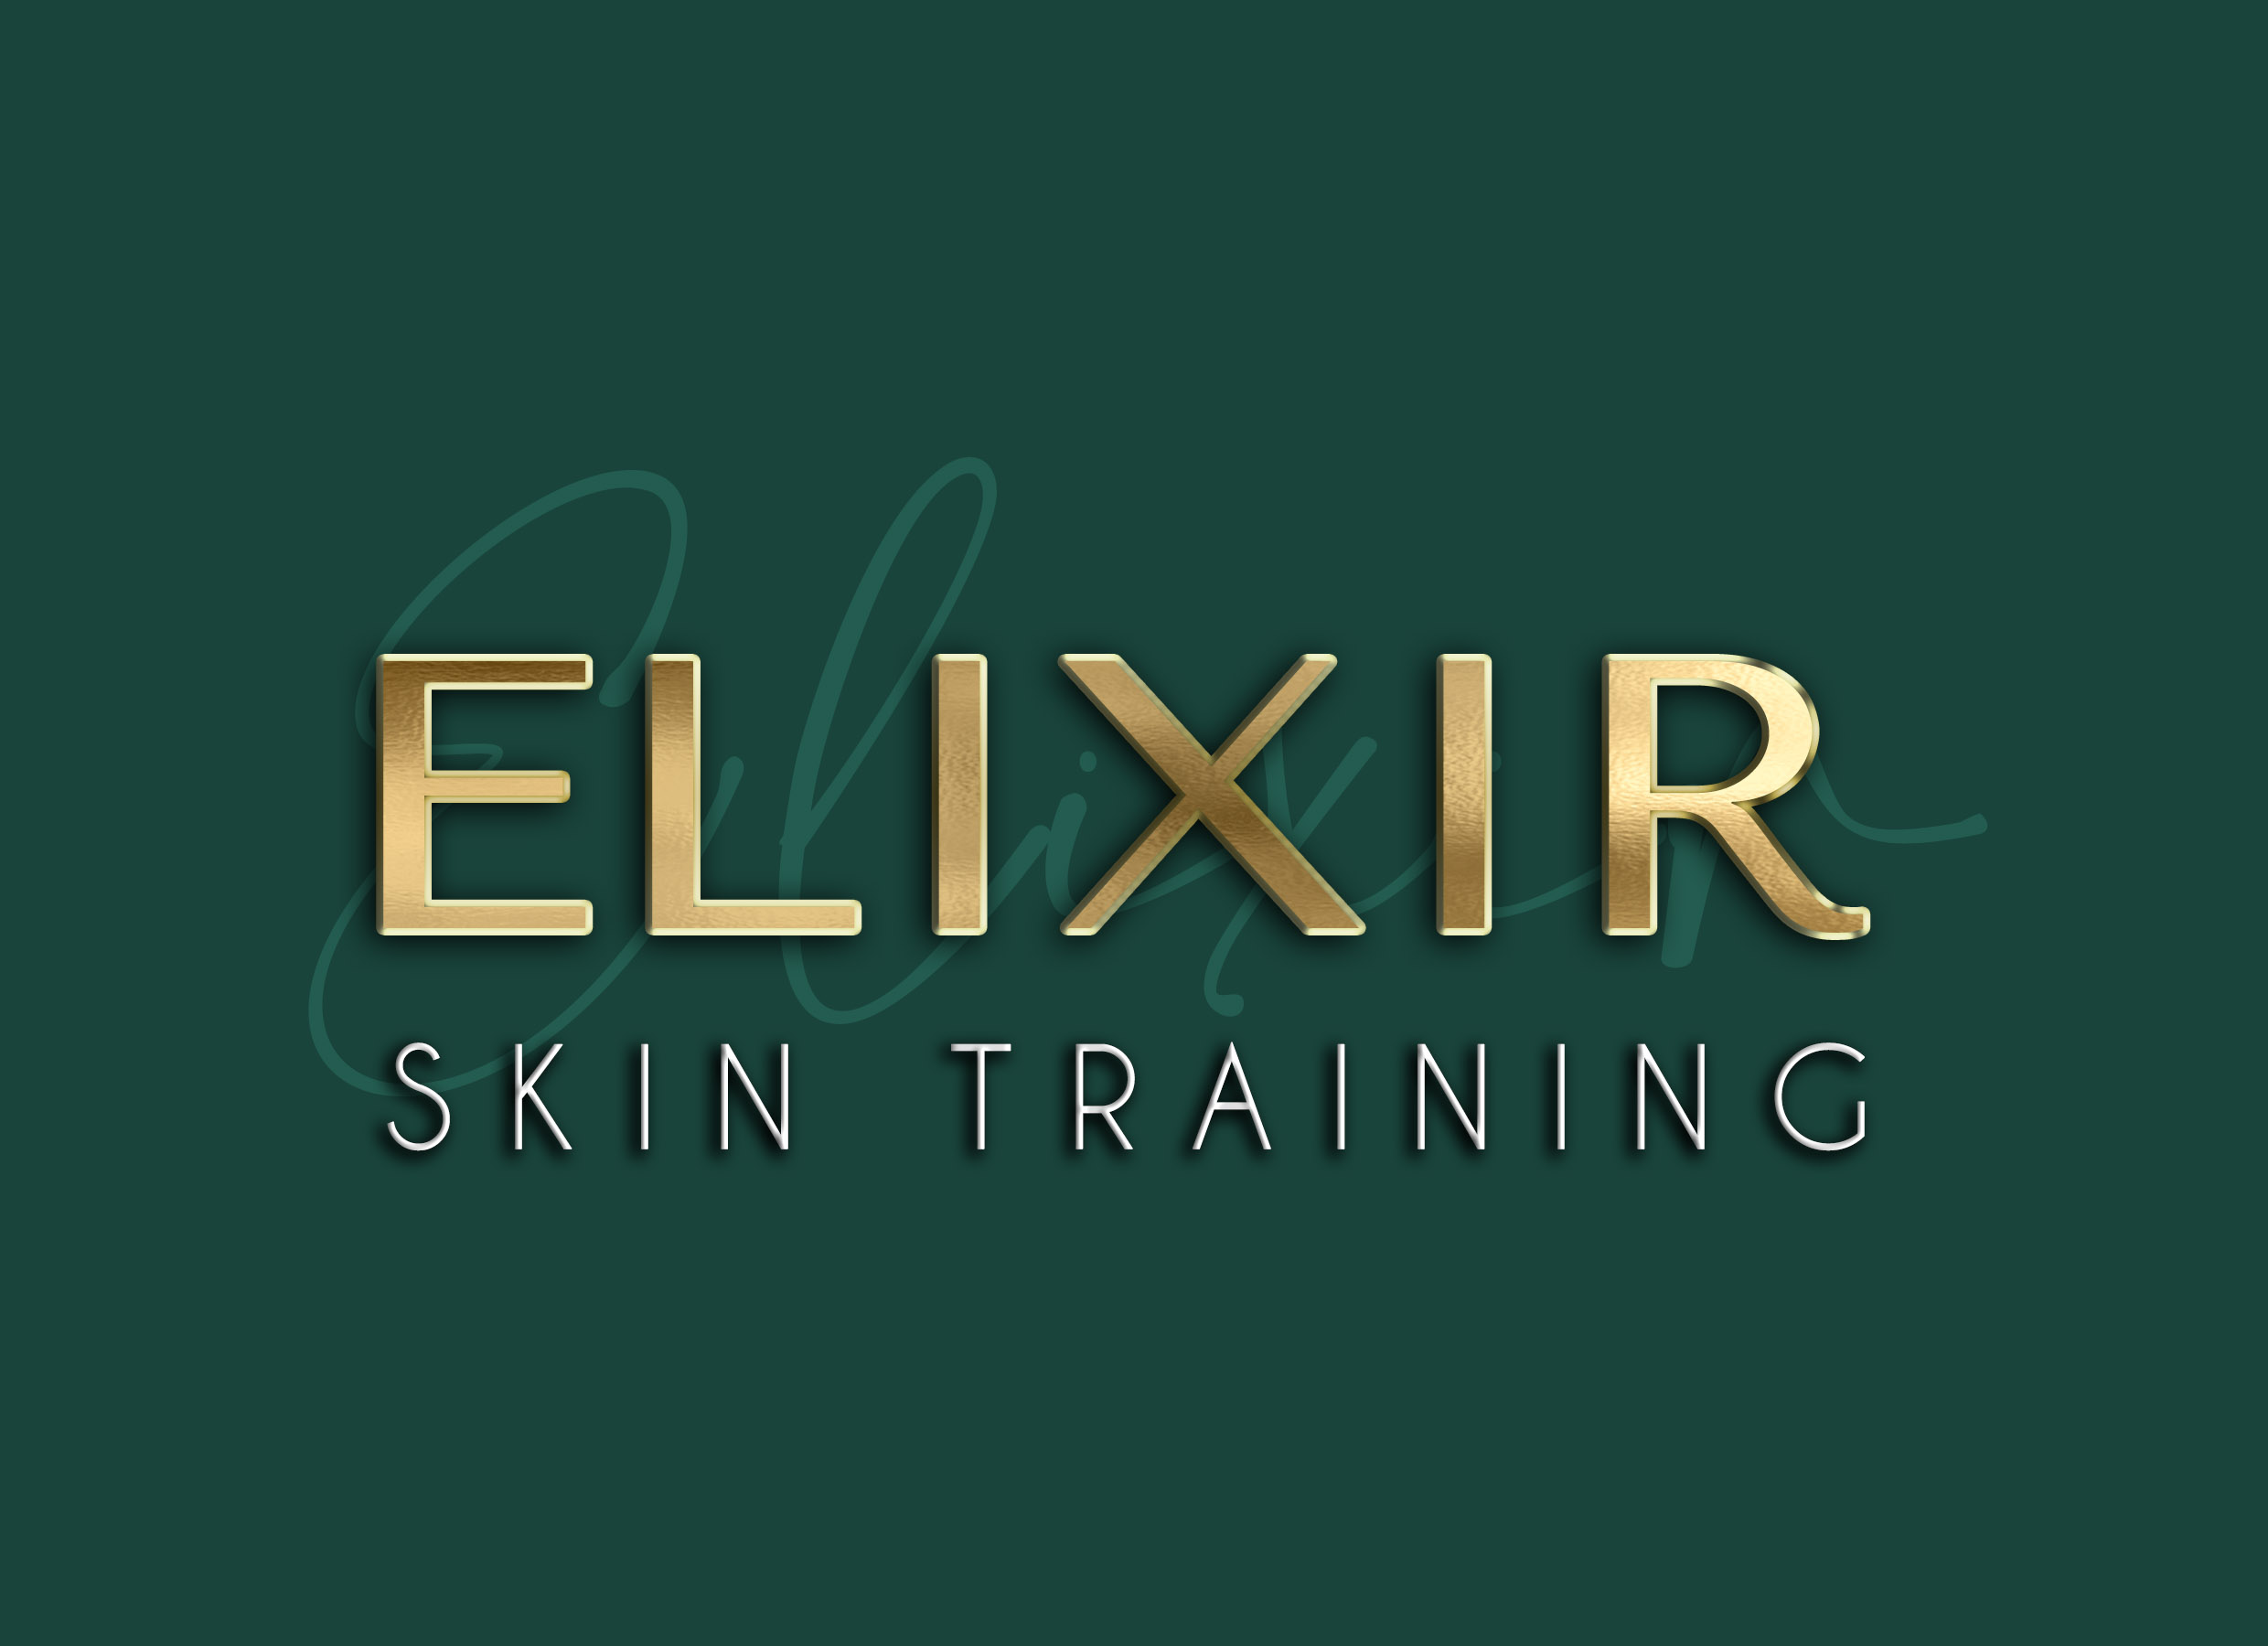 Elixir Skin Training